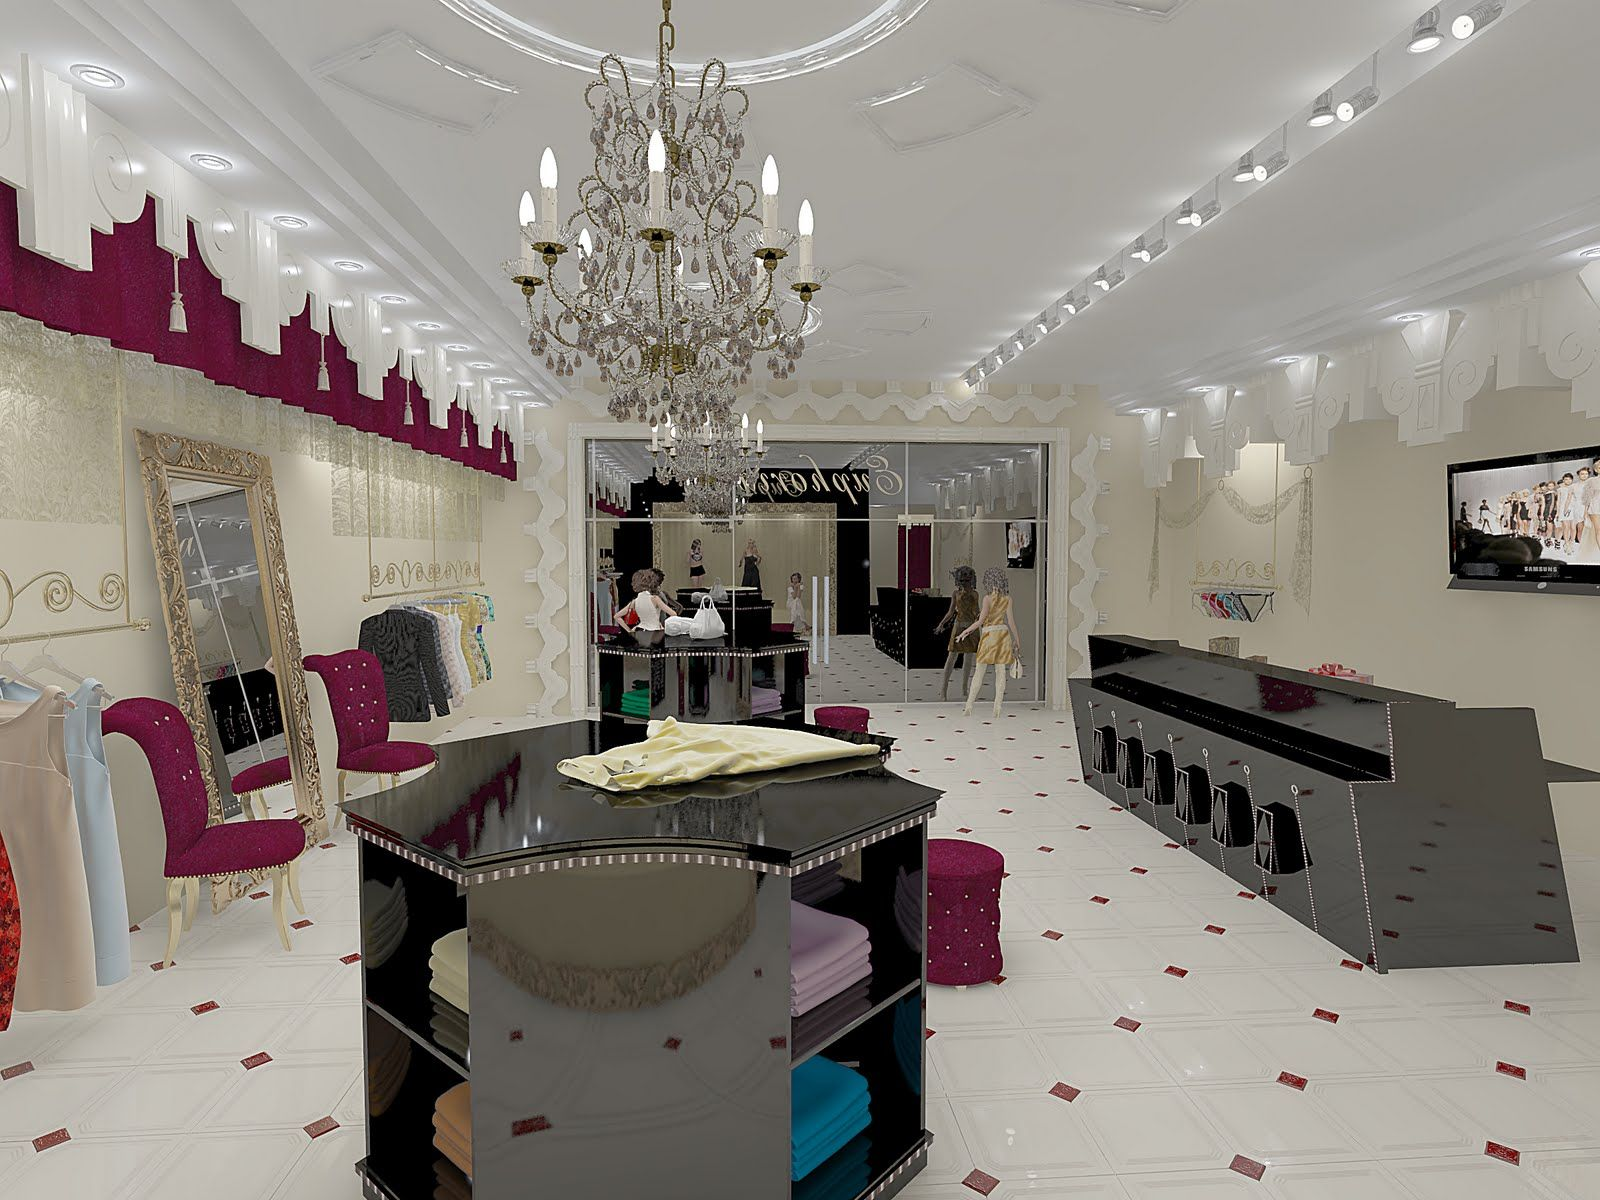 Dress shop interior design wdbt pinterest shop for Shop interior design